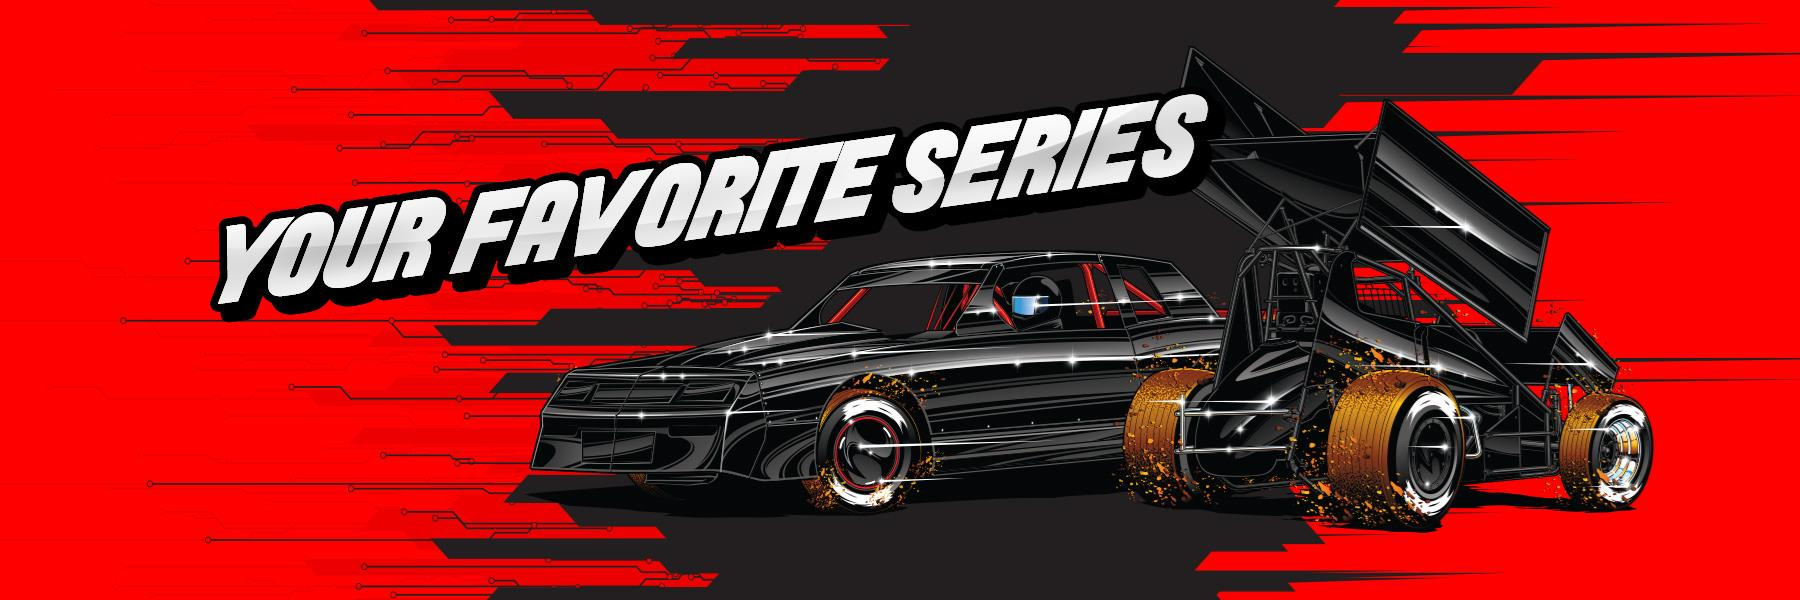 Your Favorite Series